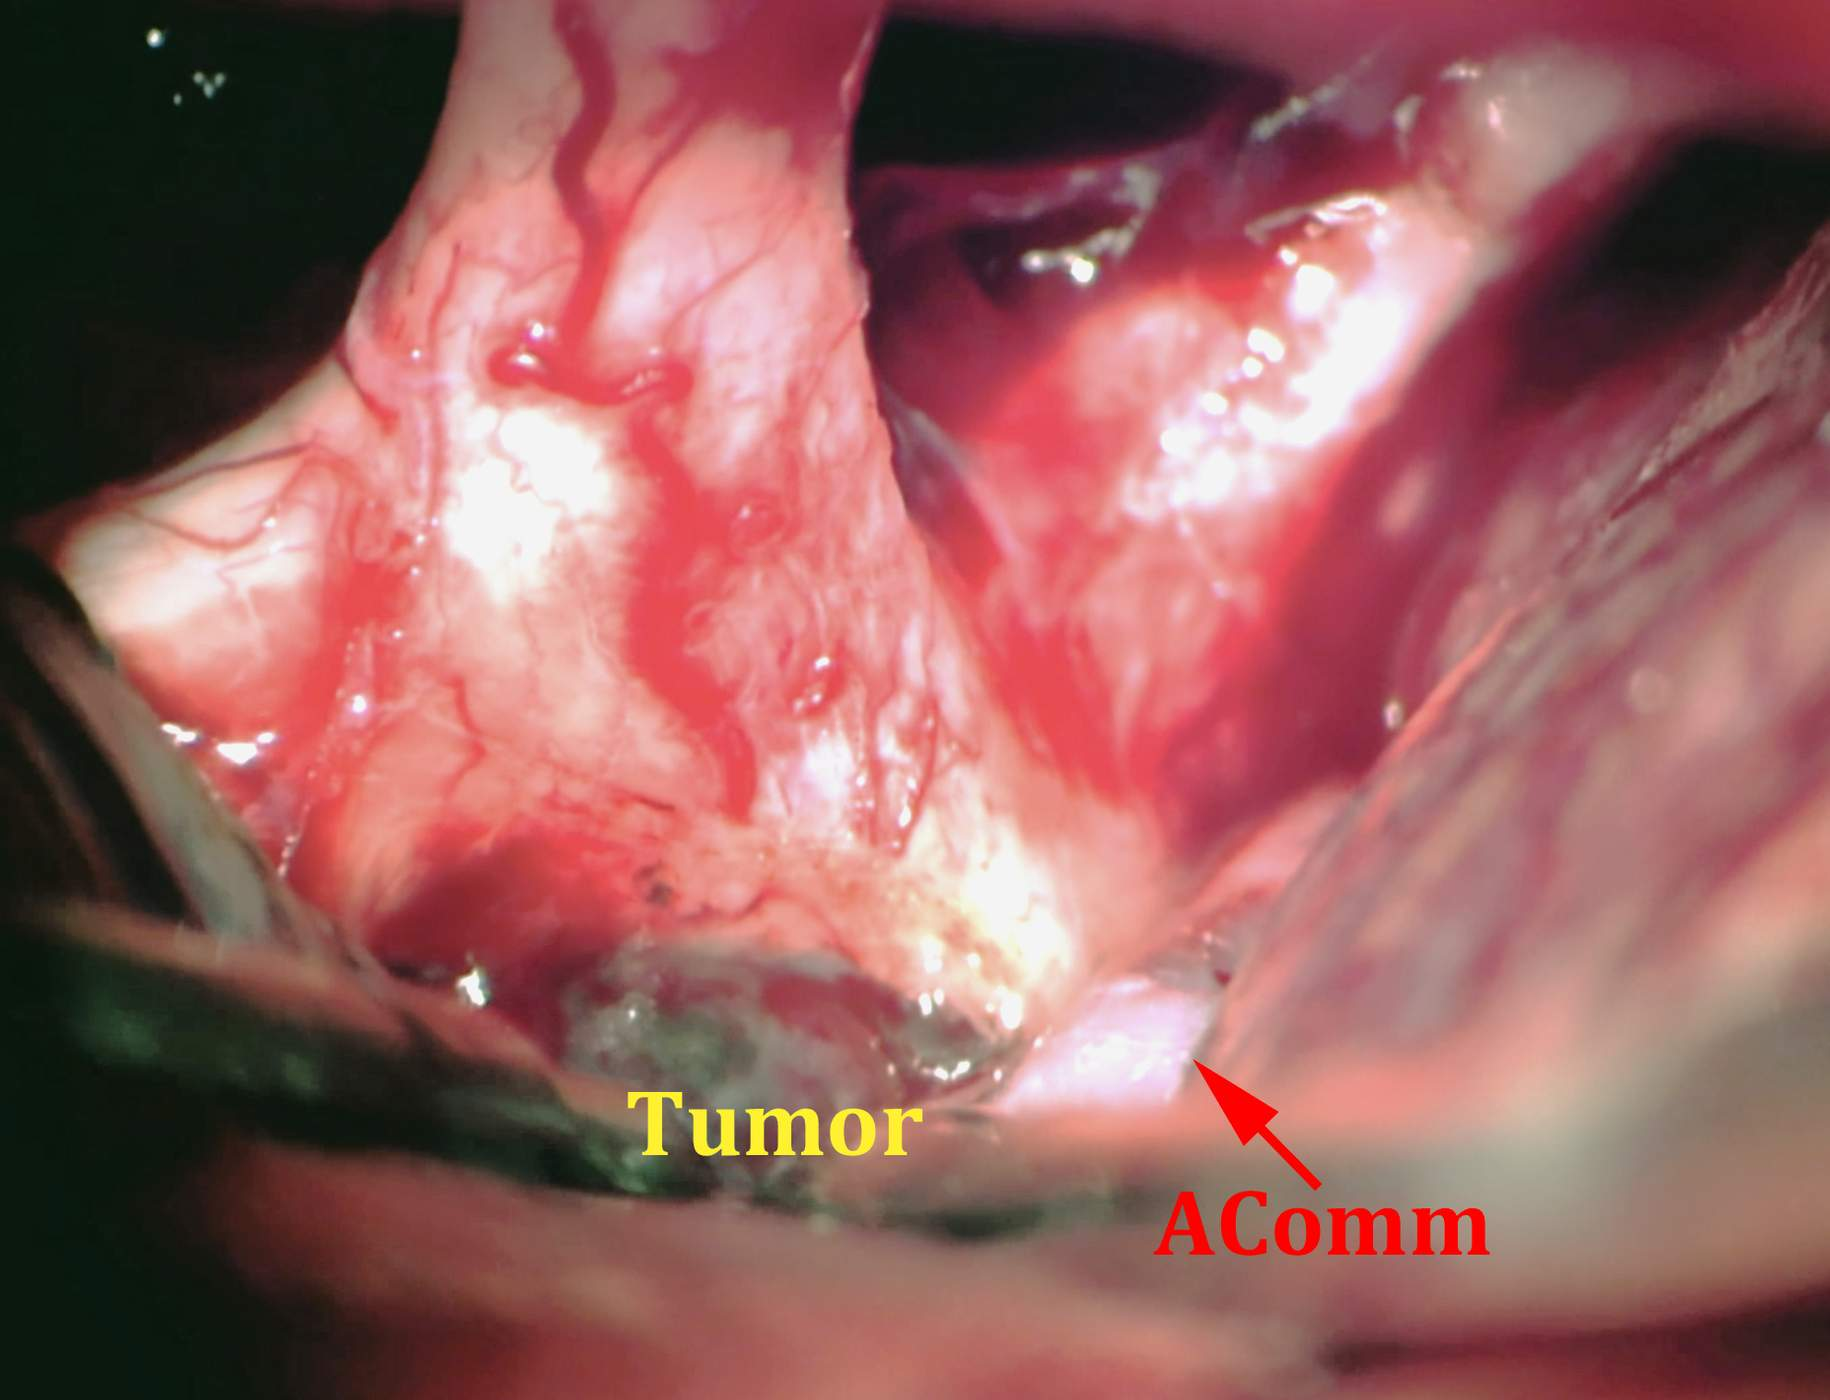 Figure 5: This is an exposure of the lamina terminalis via a left-sided orbitozygomatic craniotomy (see Figure 1 for the corresponding preoperative scans). The grayish tumor has expanded the lamina. The anterior communicating artery complex (AComm) is labeled. Undue retraction of this vascular structure should be avoided. You can appreciate the narrow operative corridor.